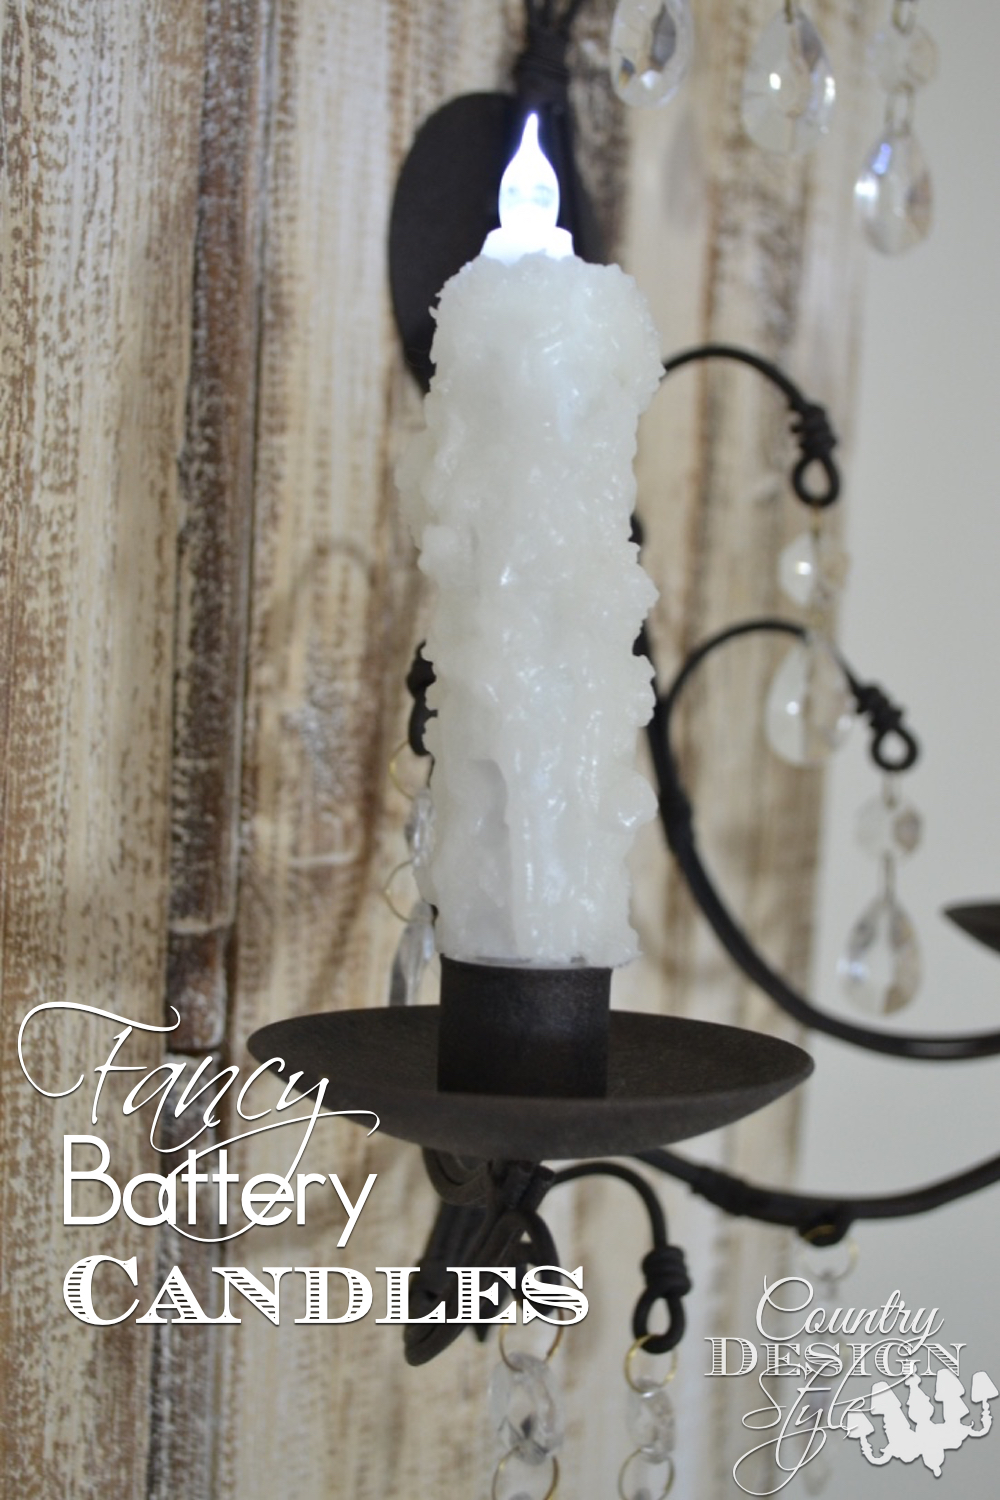 "How to make inexpensive battery candles ""fancy!"" I add melted wax to battery candles for an elegant look. Great DIY decor for farmhouse, cottage or cabin style. Fun for parties, events, and celebrations Country Design Style www.countrydesignstyle.com"